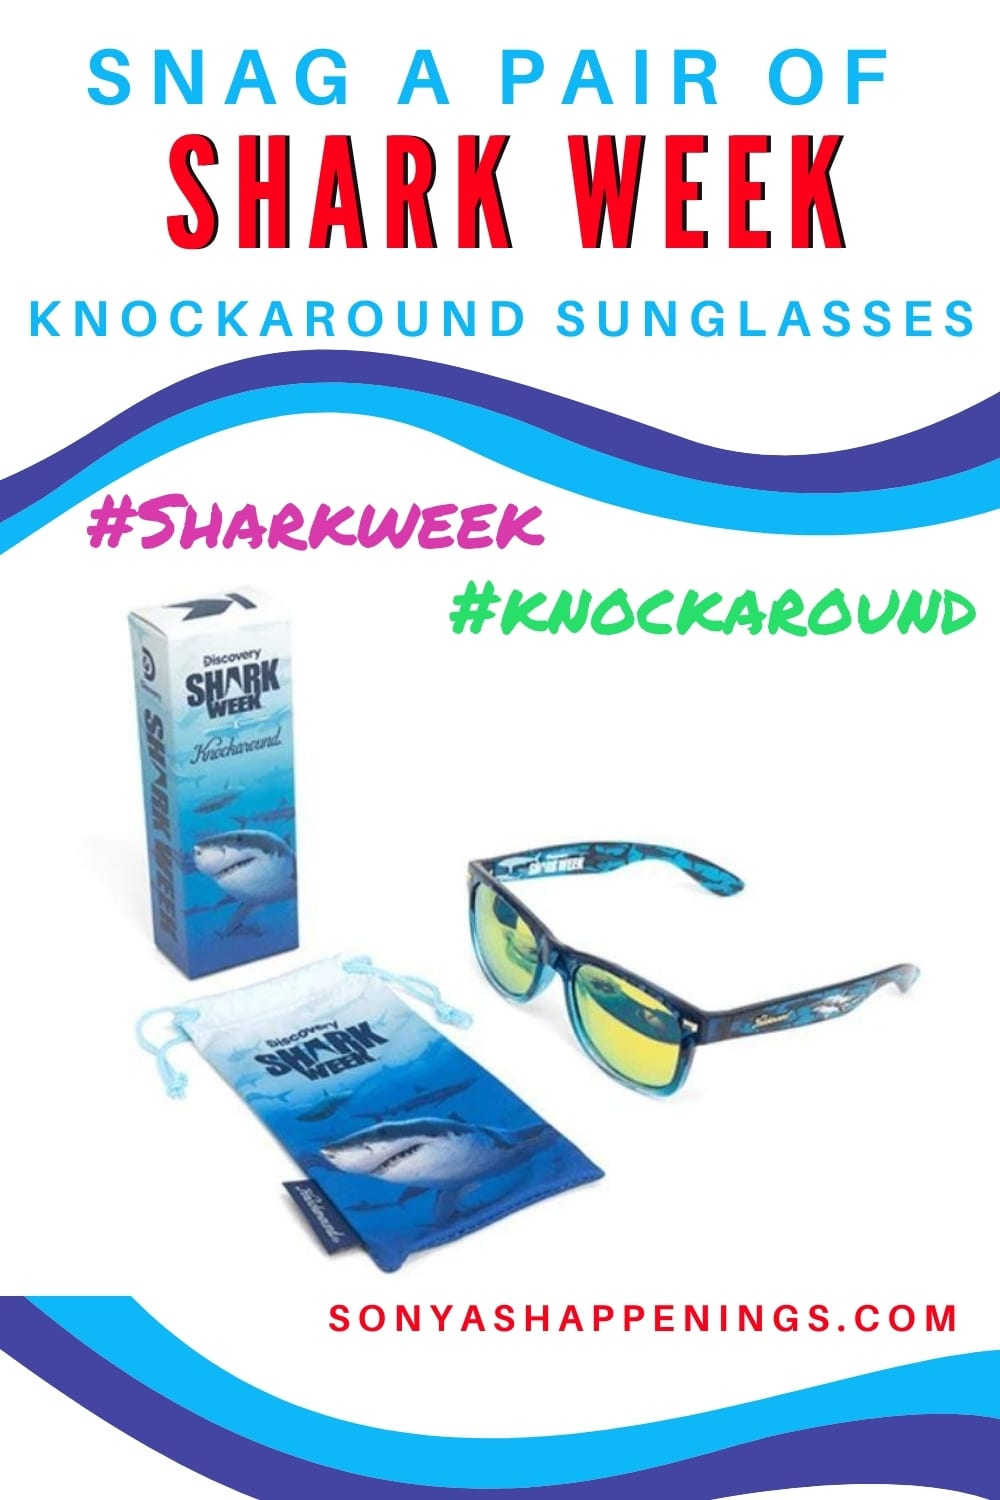 You Need These! Shark Week Knockaround Sunglasses~ (Shark Week Aug 9-16) Mine Are IN!